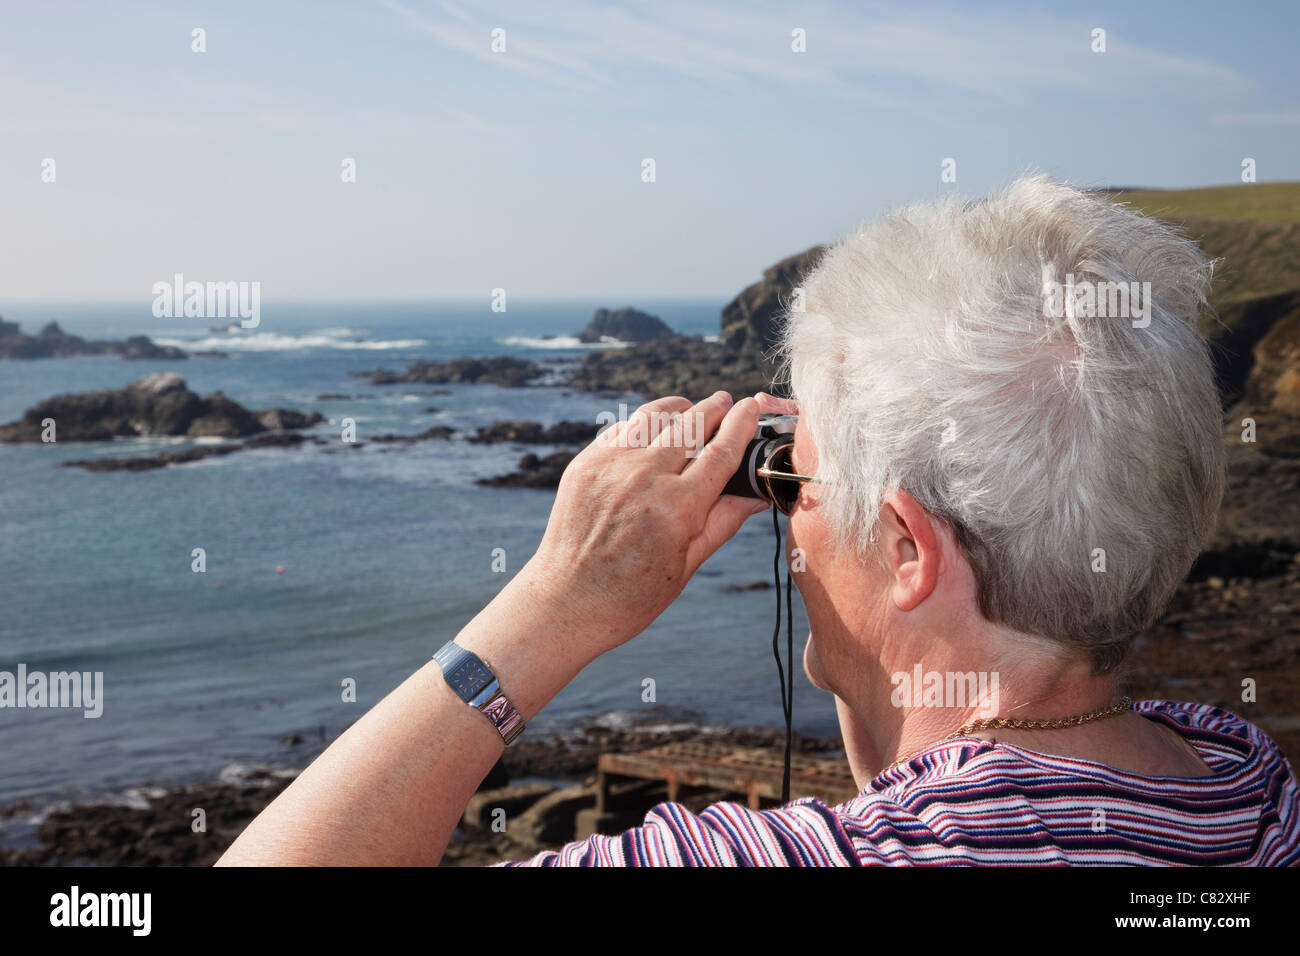 Retraité Senior woman looking through binoculars en mer sur la côte au point le plus au sud sur la Grande-Bretagne. Banque D'Images